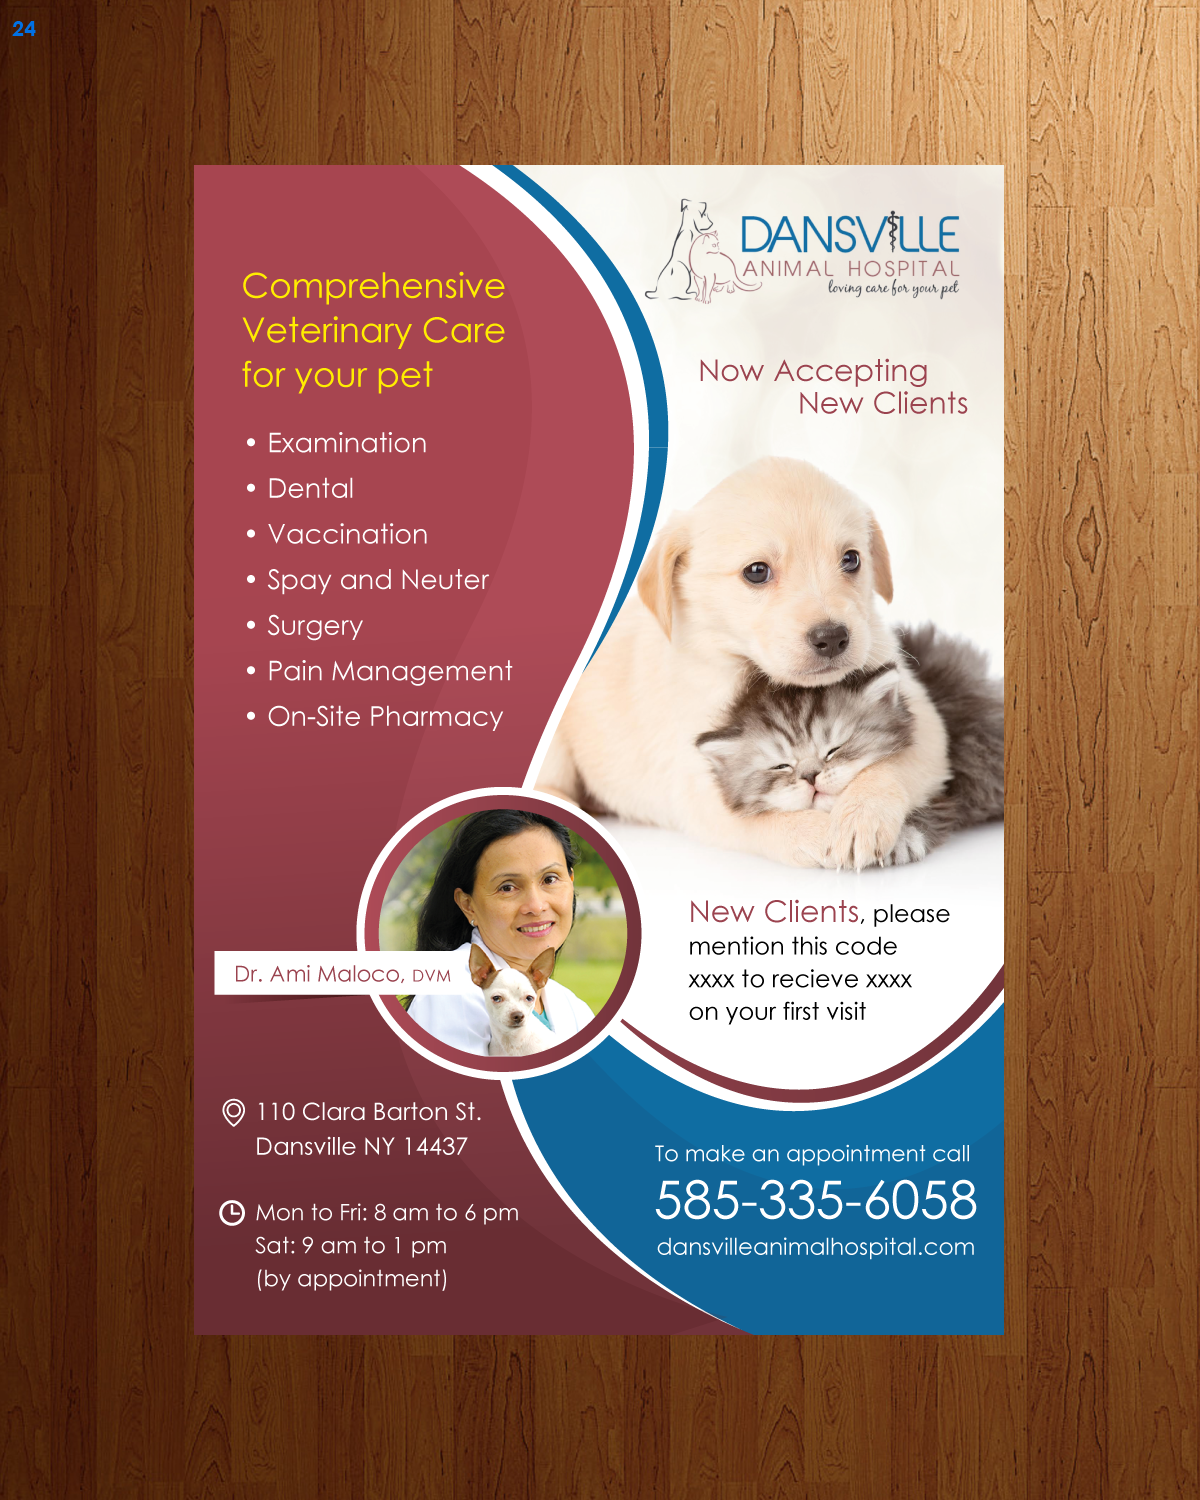 Elegant Playful Health Poster Design For A Company By: Elegant, Playful, Veterinary Newspaper Ad Design For A